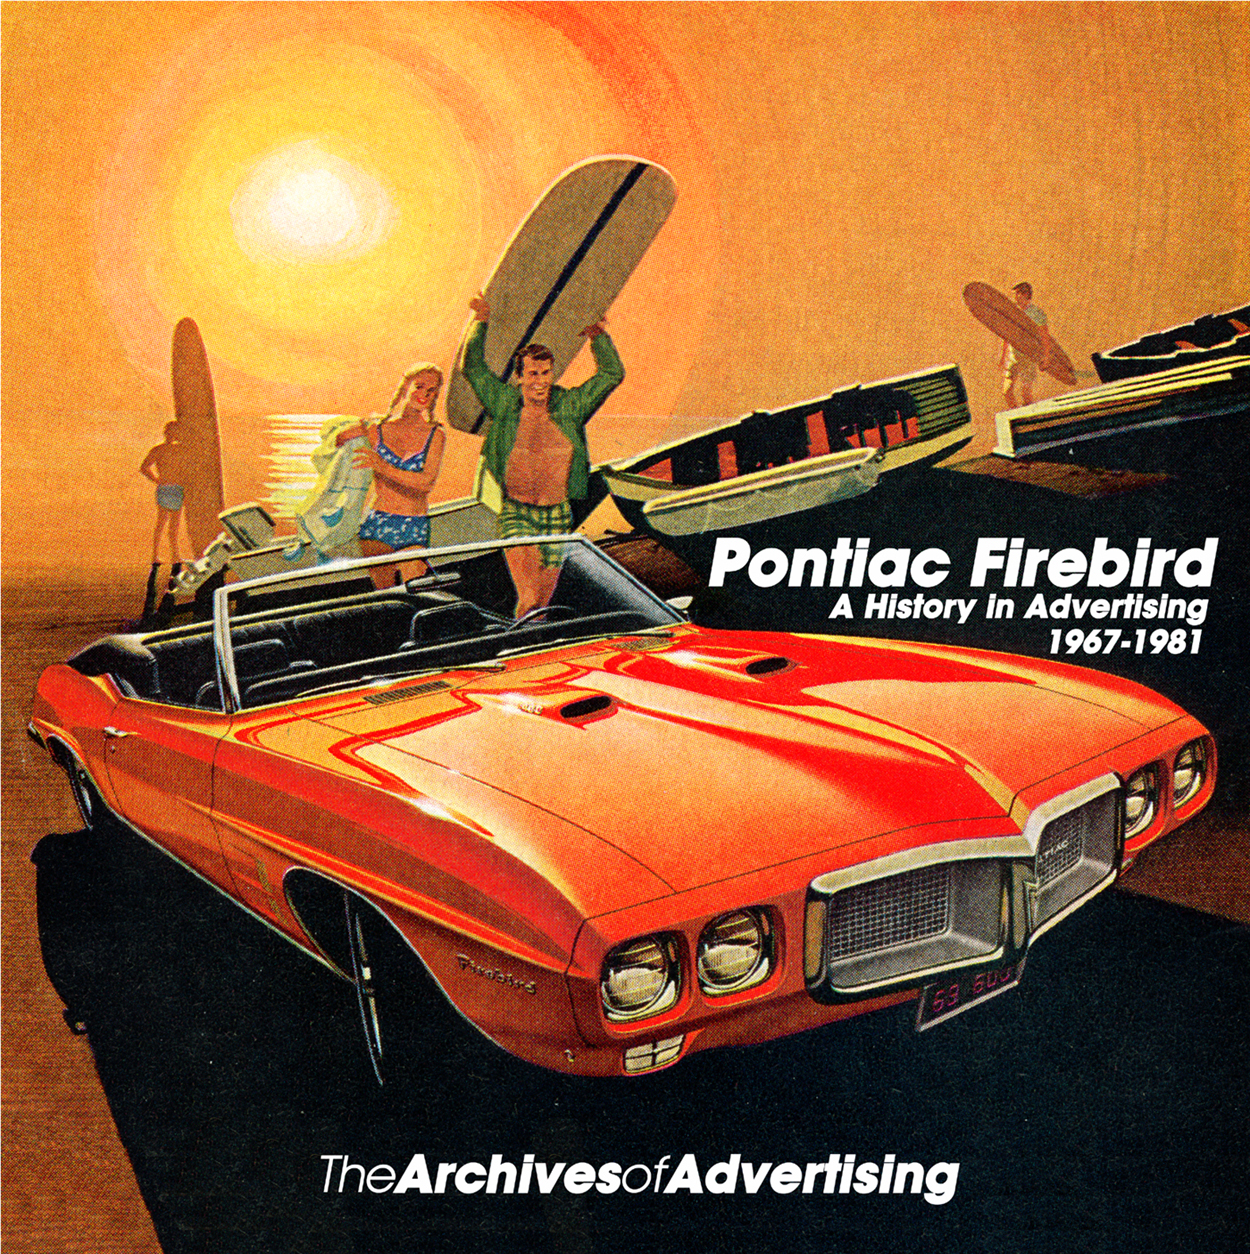 1967 1968 1969 1970 1971 1972 1973 1974 1975-1981 Pontiac Firebird ad CD 75+ ads